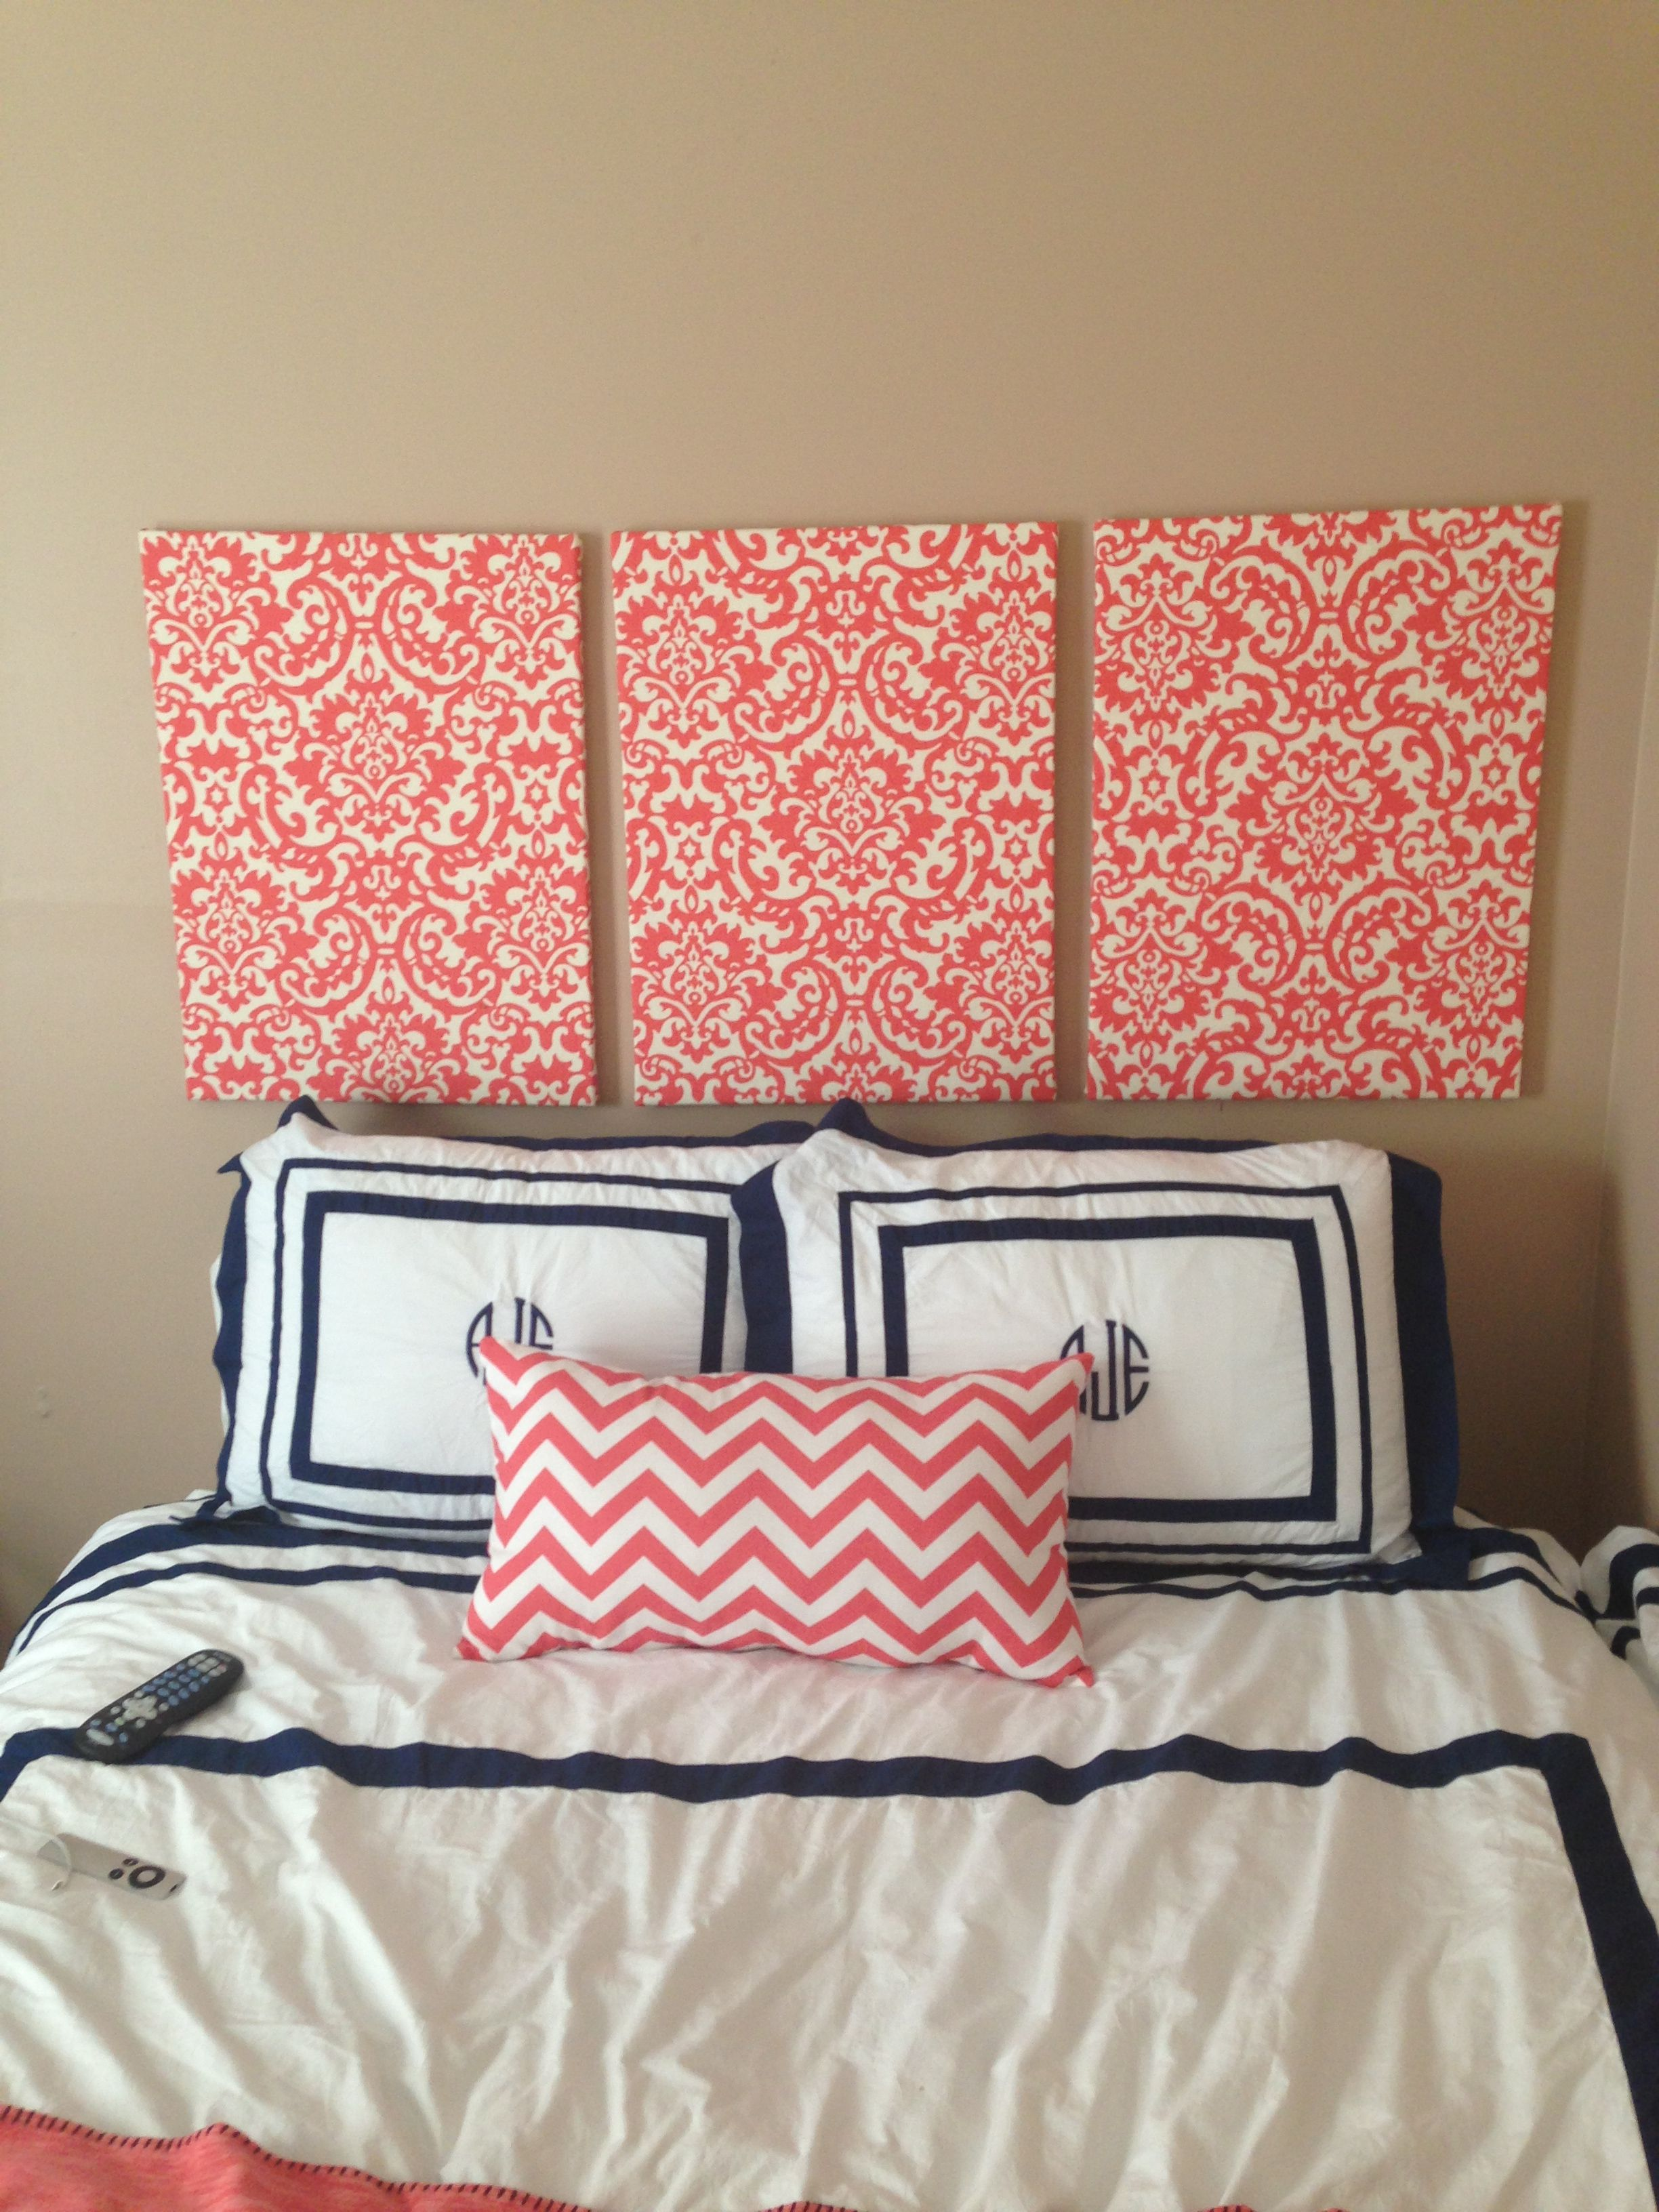 Fabric covered canvas as headboard